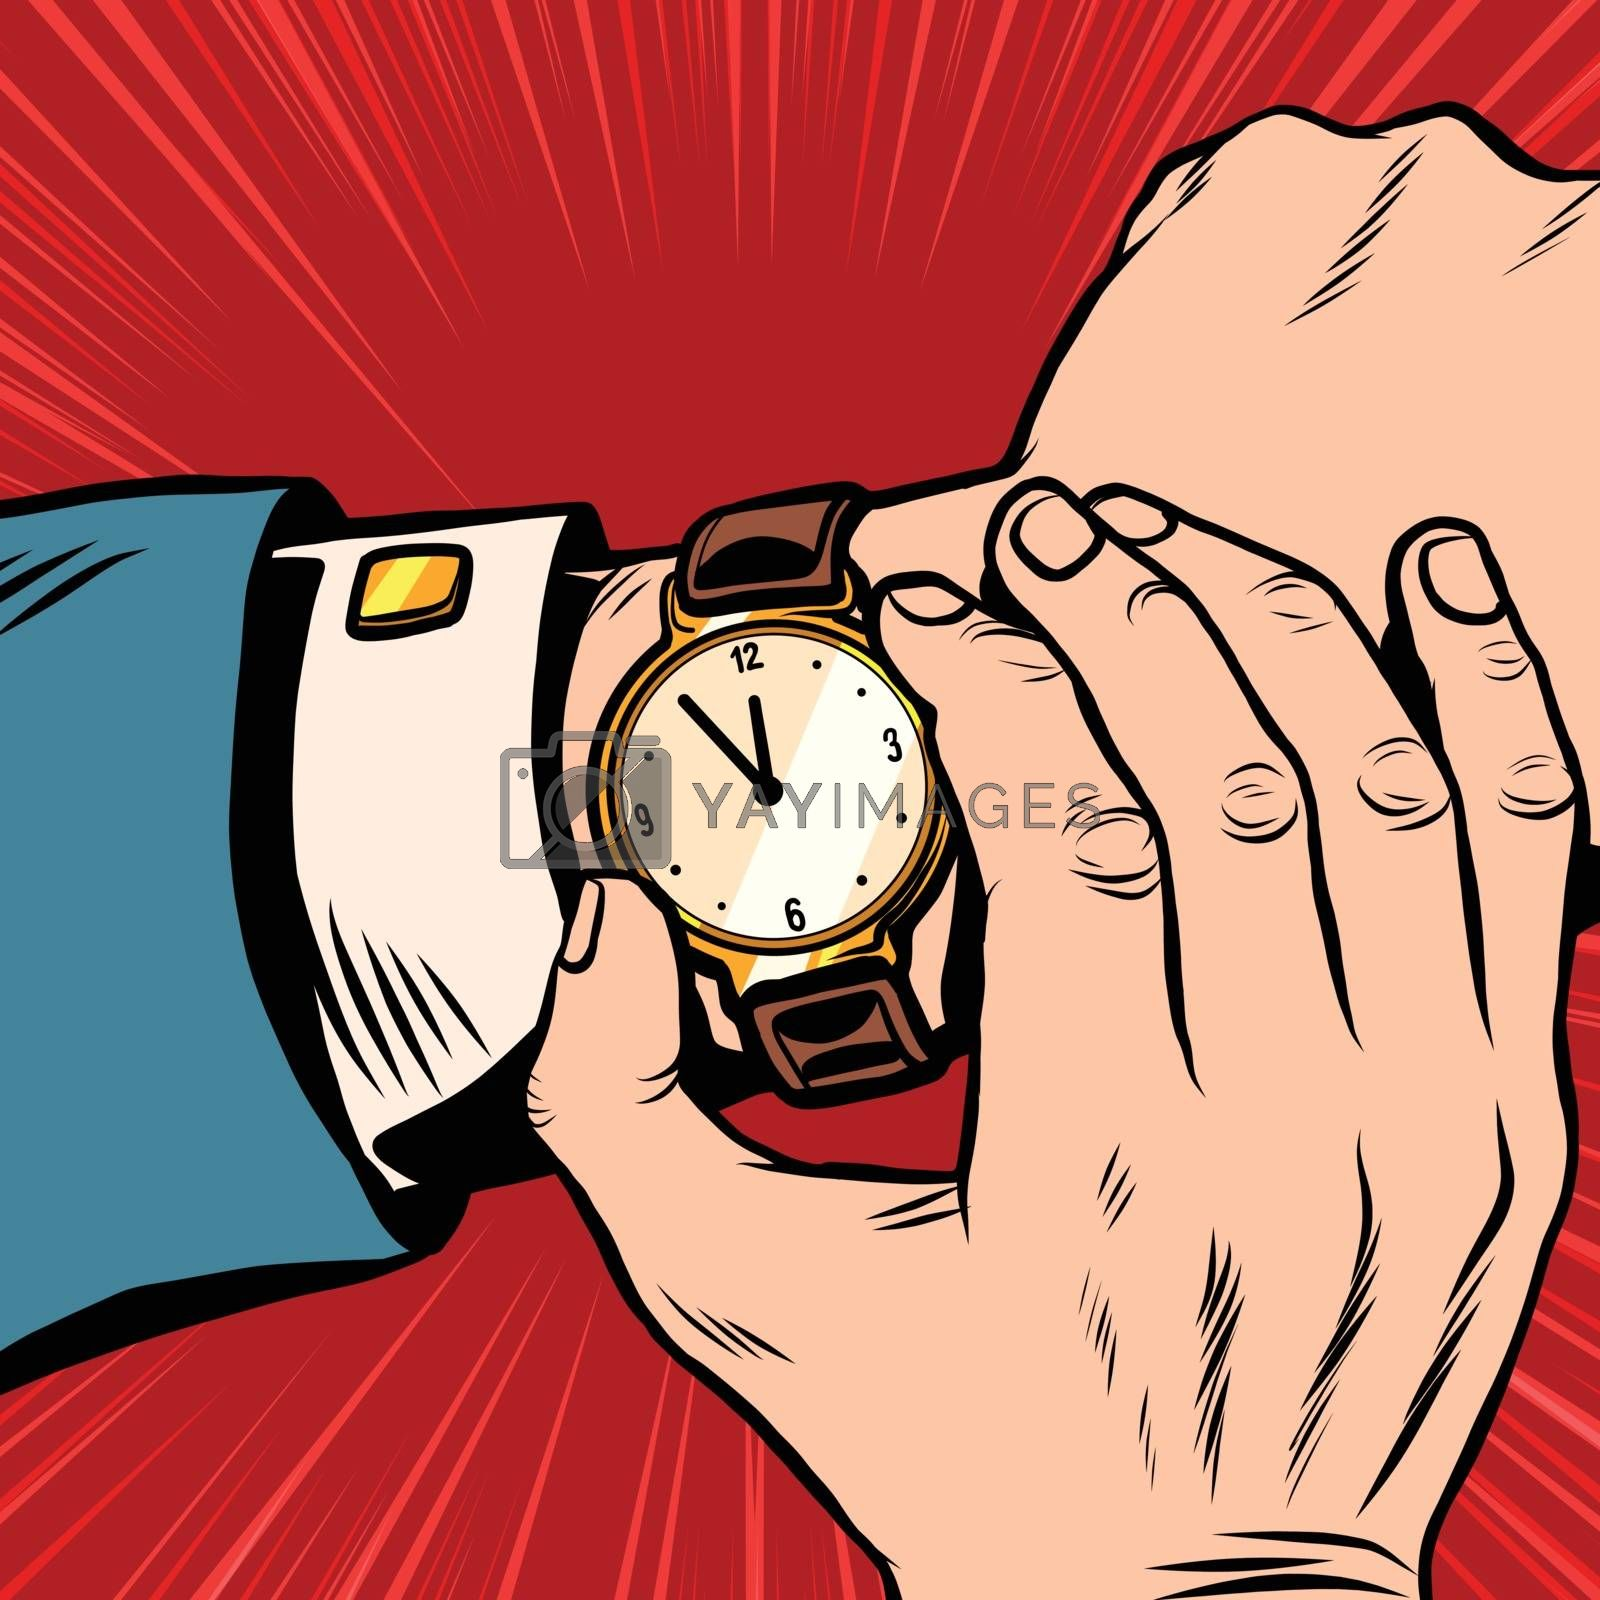 Wrist watch retro pop art pop art retro vector. What time is it. Retro clock with hands and dial